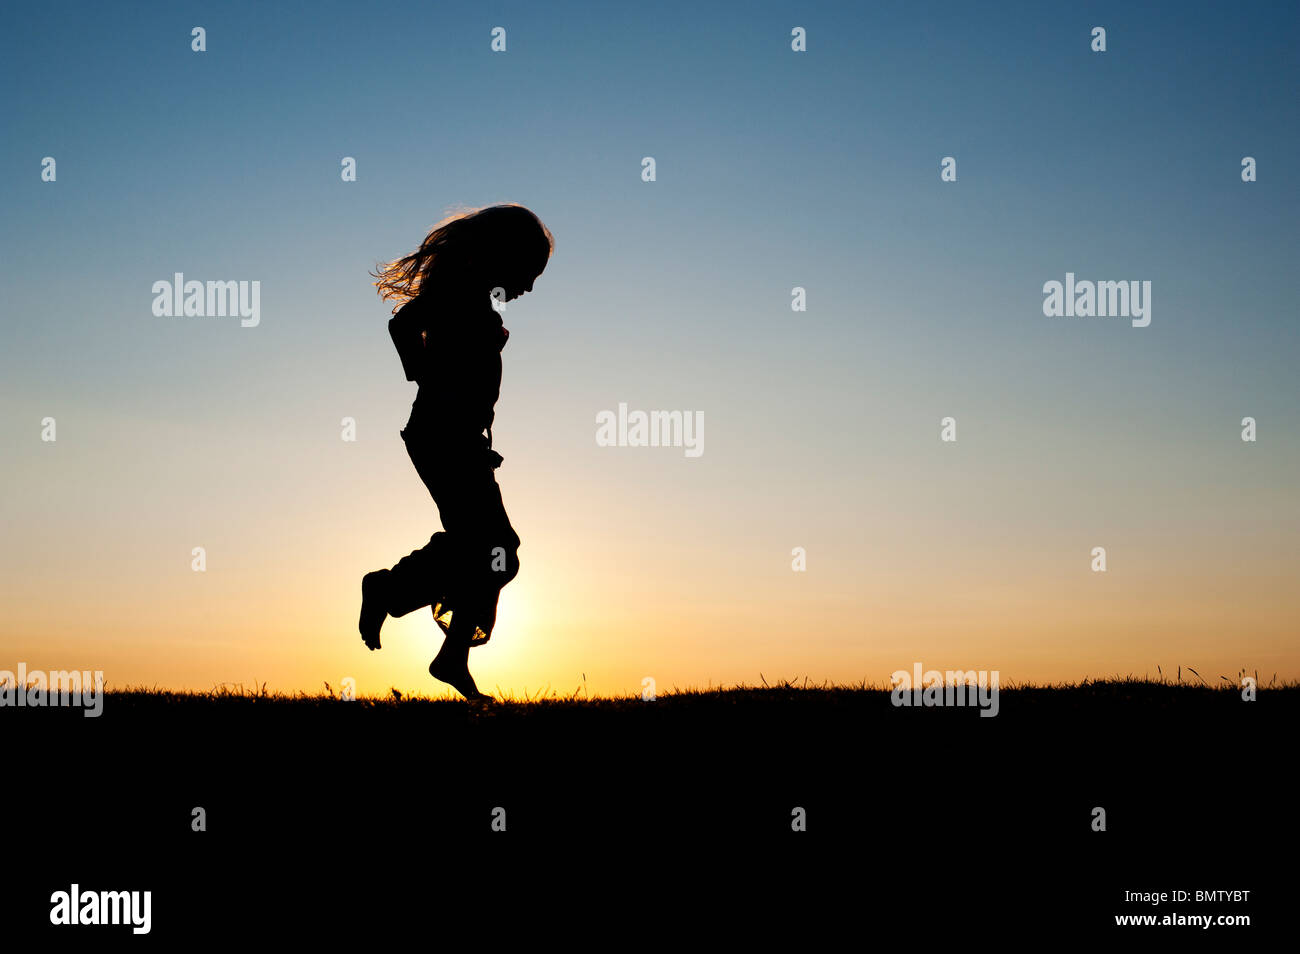 Young Girl energetically having fun and dancing around at sunset. Silhouette - Stock Image